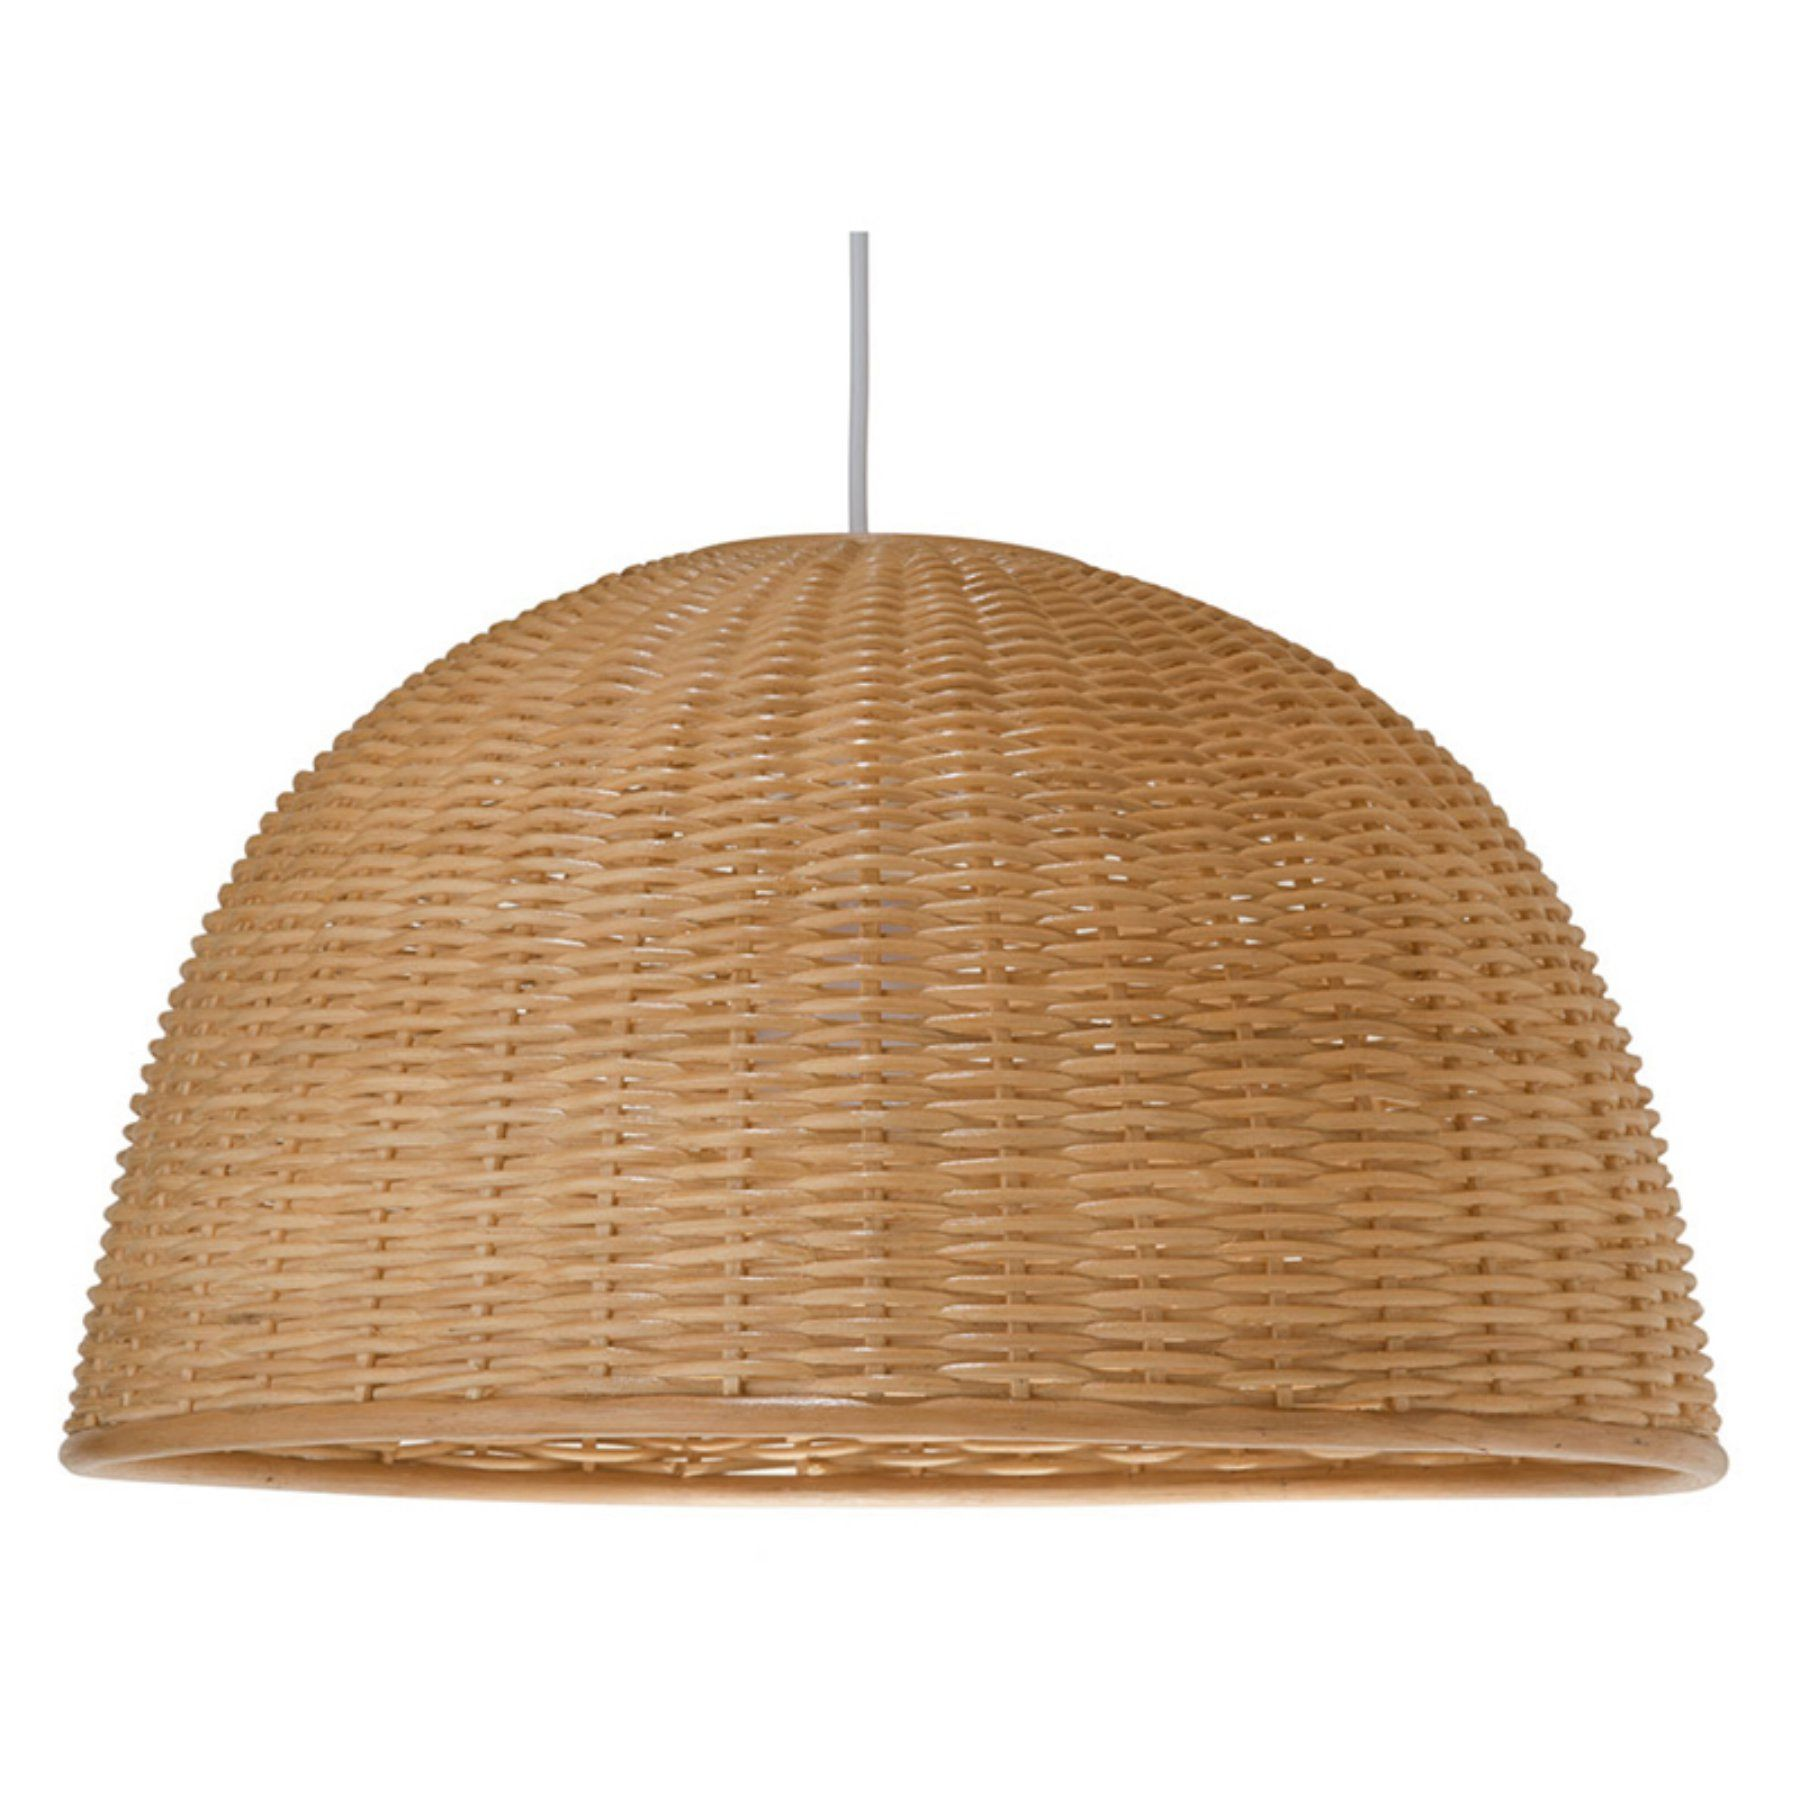 Kouboo Llc 10500 Dome Wicker Pendant Light  1050031